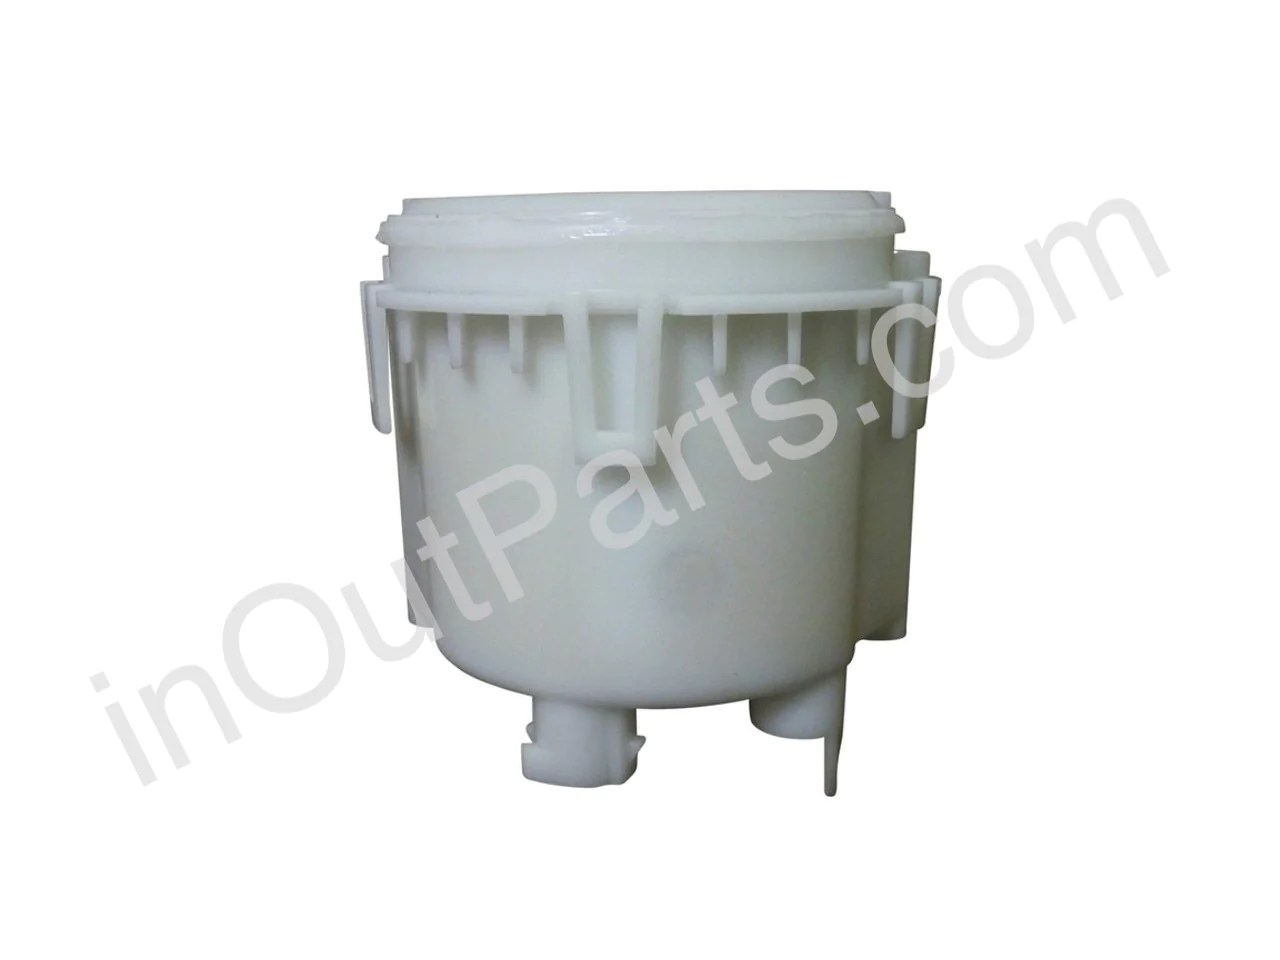 medium resolution of  fuel filter fits toyota harrier kluger 1mzfe 2azfe 2003 2004 2005 2006 2007 2008